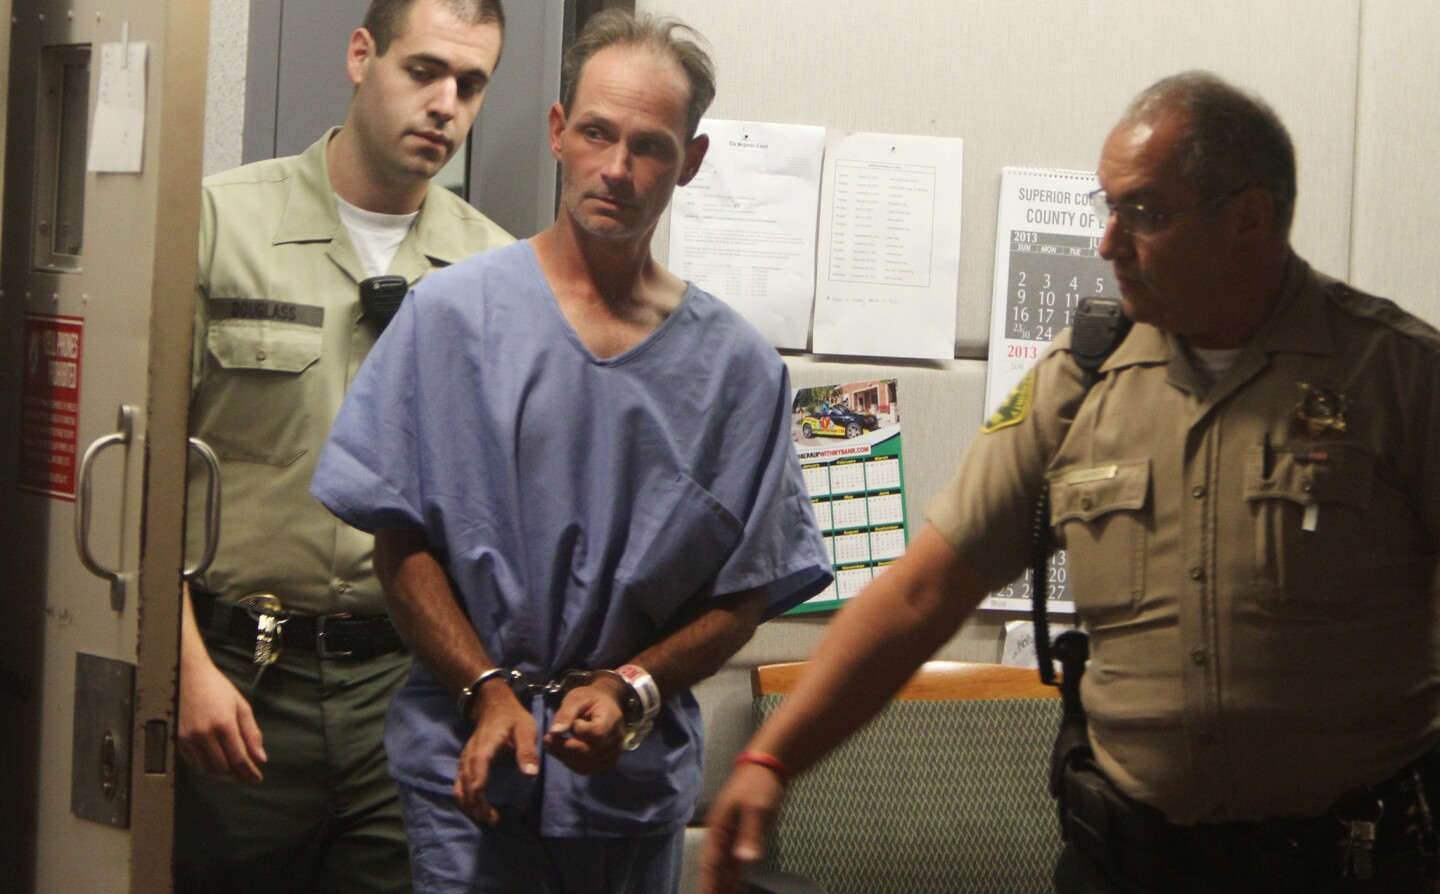 Deputies escort Nathan Louis Campbell at the Airport Courthouse, where he was arraigned Aug. 6, 2013, on charges of driving into crowds on the Venice boardwalk, killing a honeymooning Italian woman and injuring 16 others.